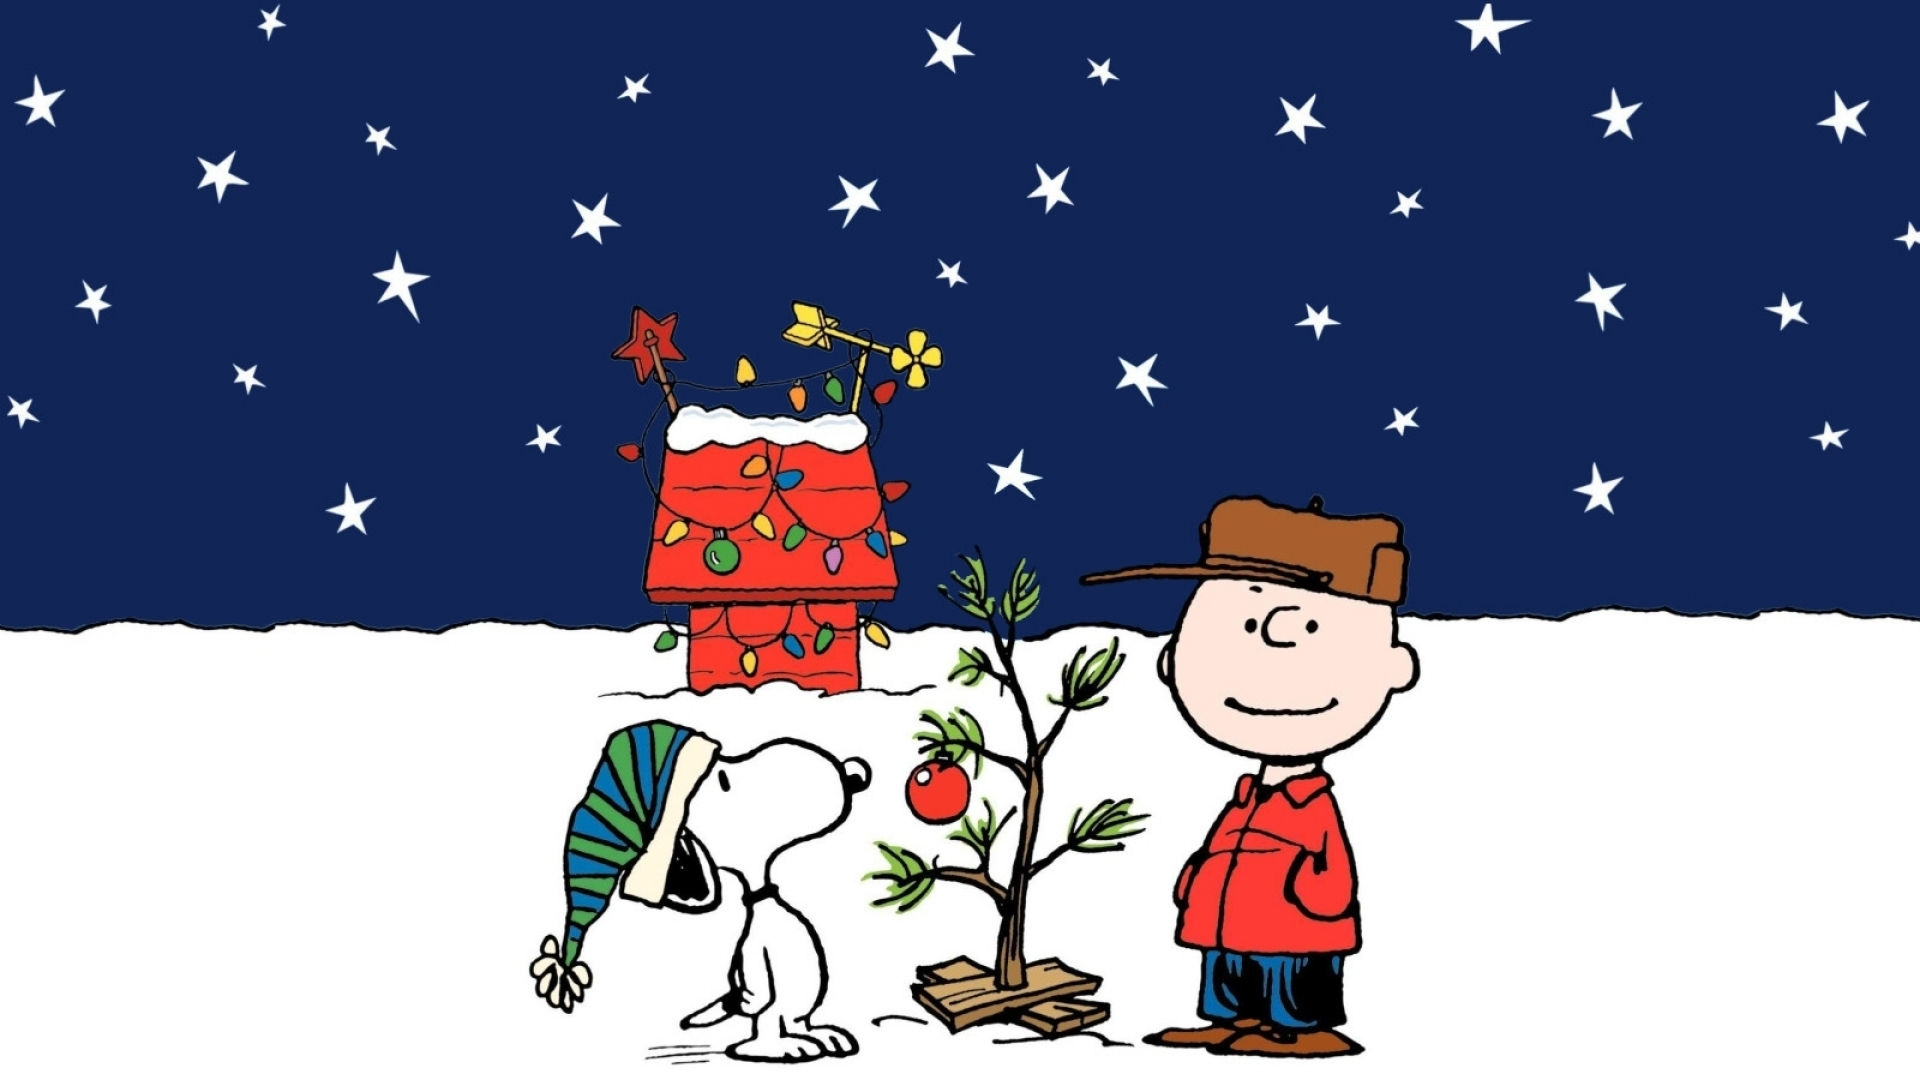 Free Snoopy Christmas Computer Wallpaper Wallpapersafari